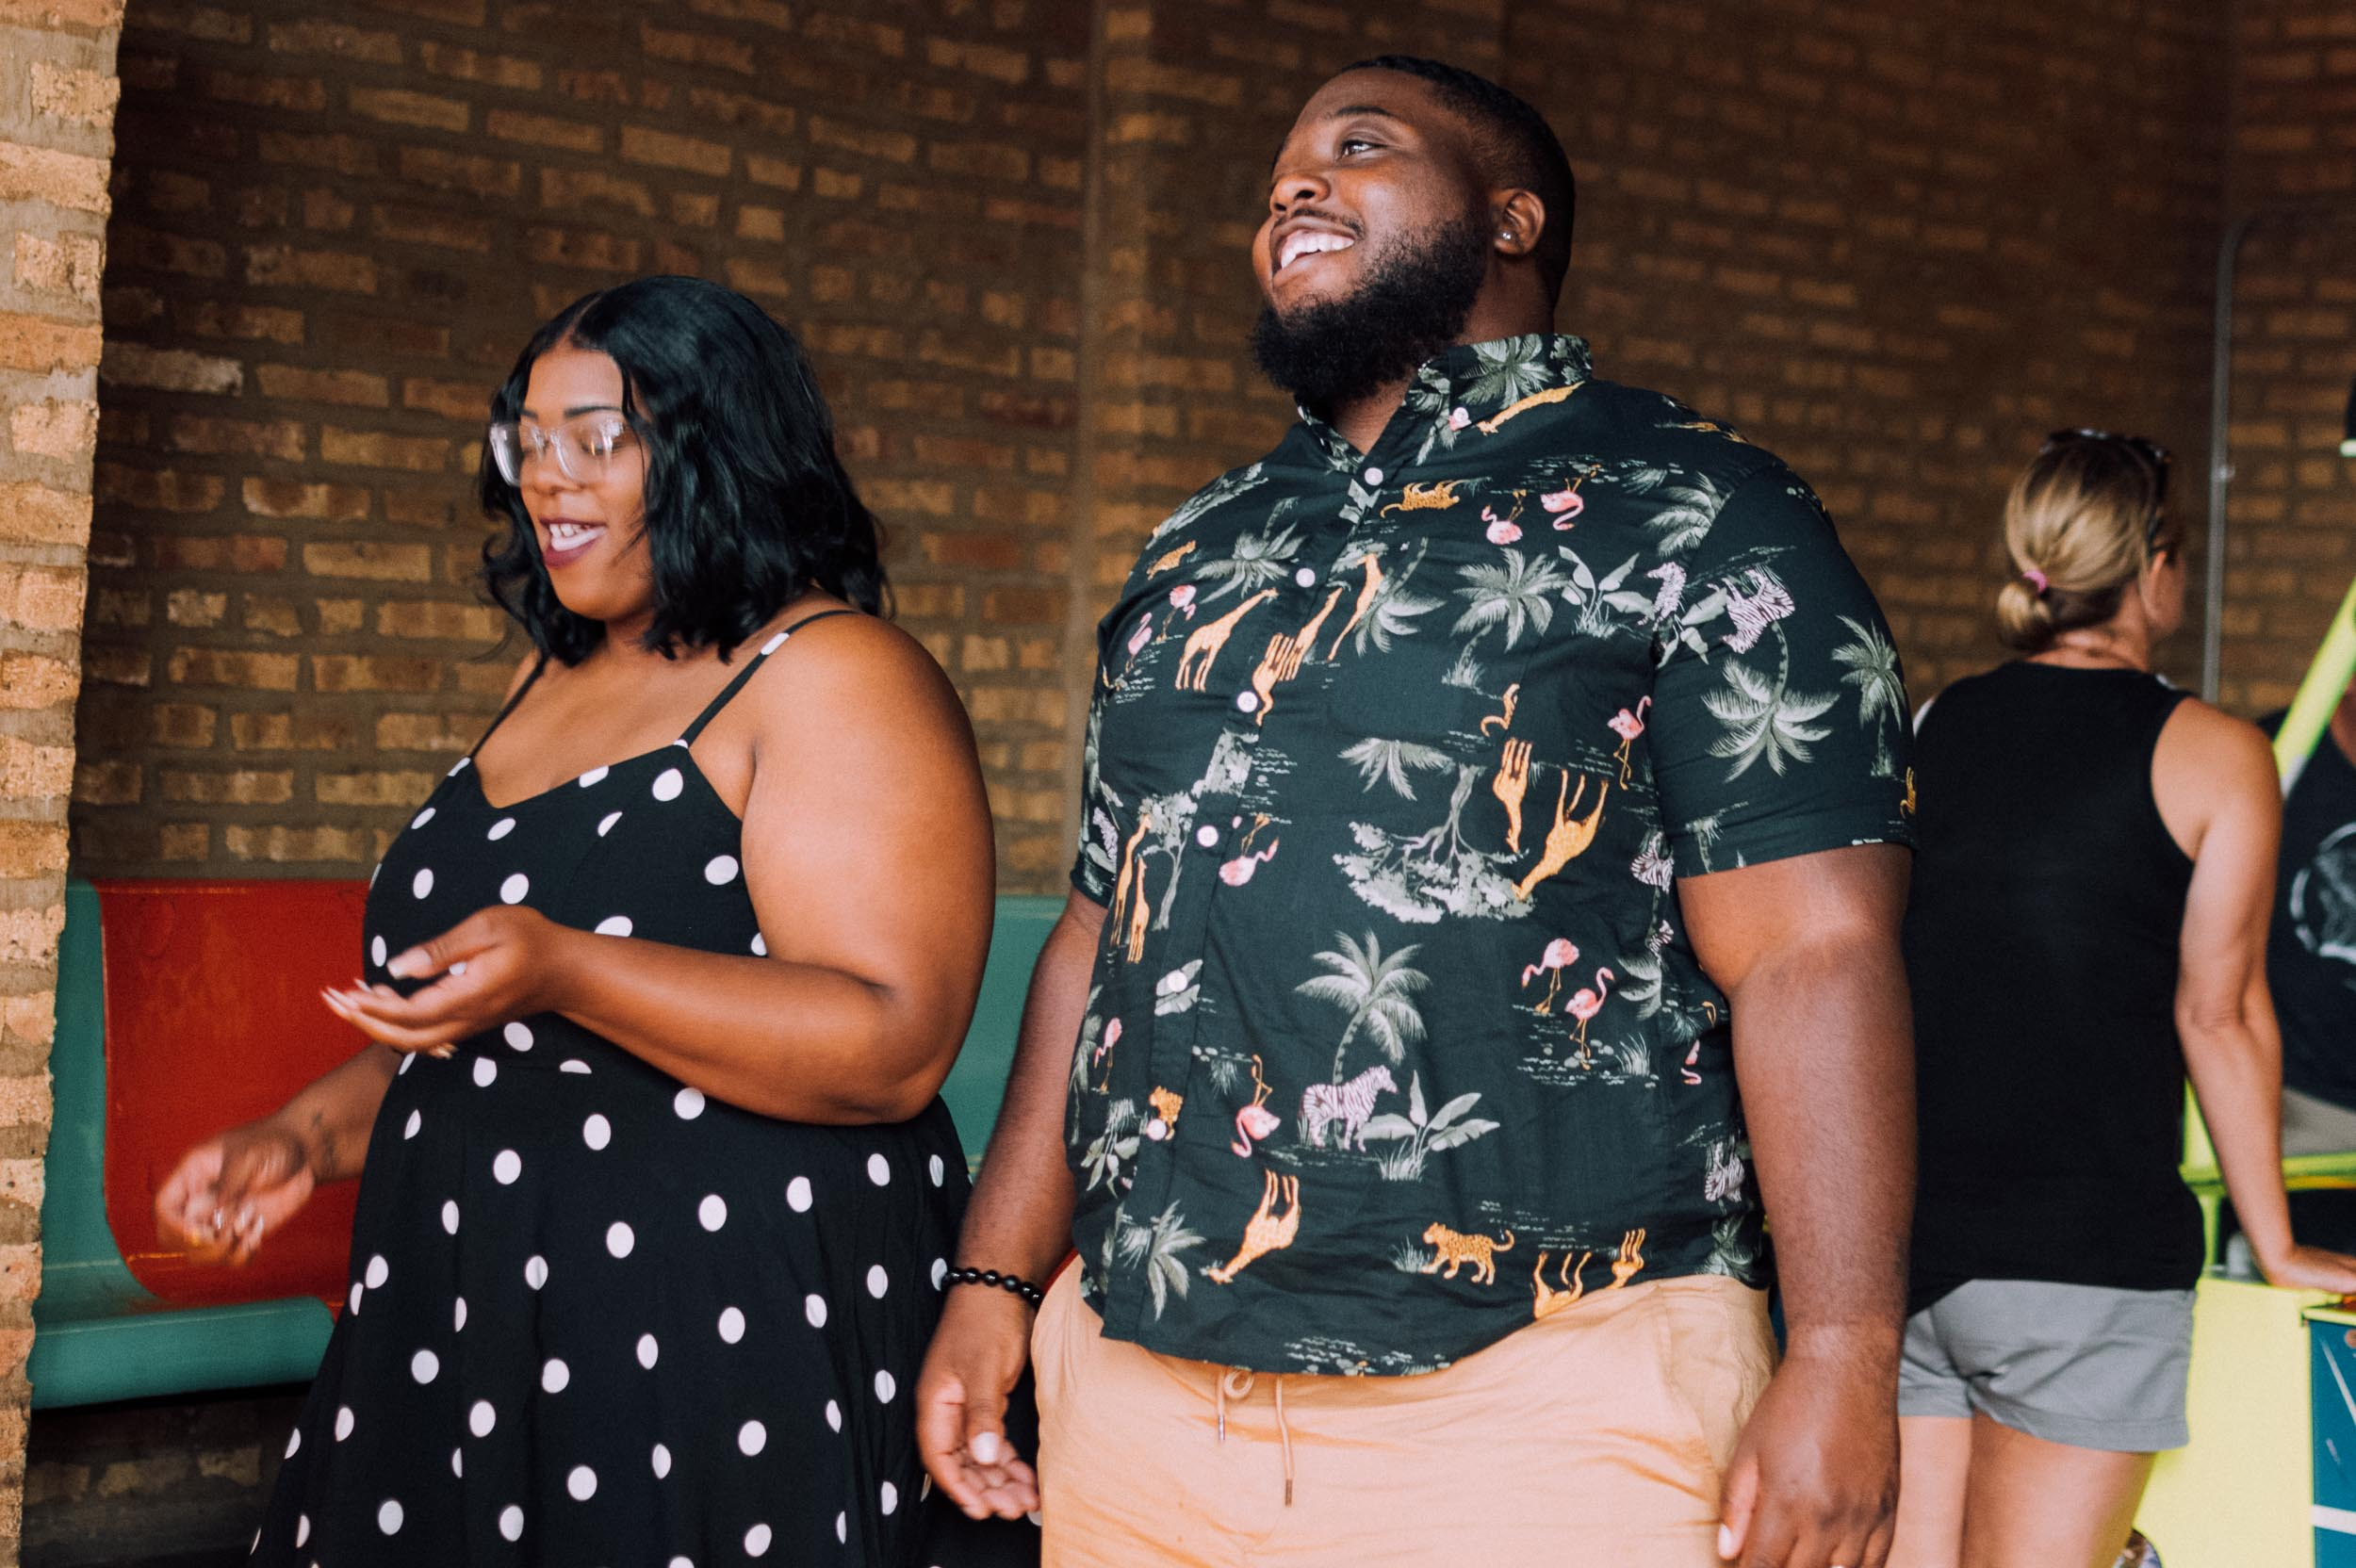 Logan Square, Chicago Elopement at Logan Emporium shot by Captured by Bianca 2019